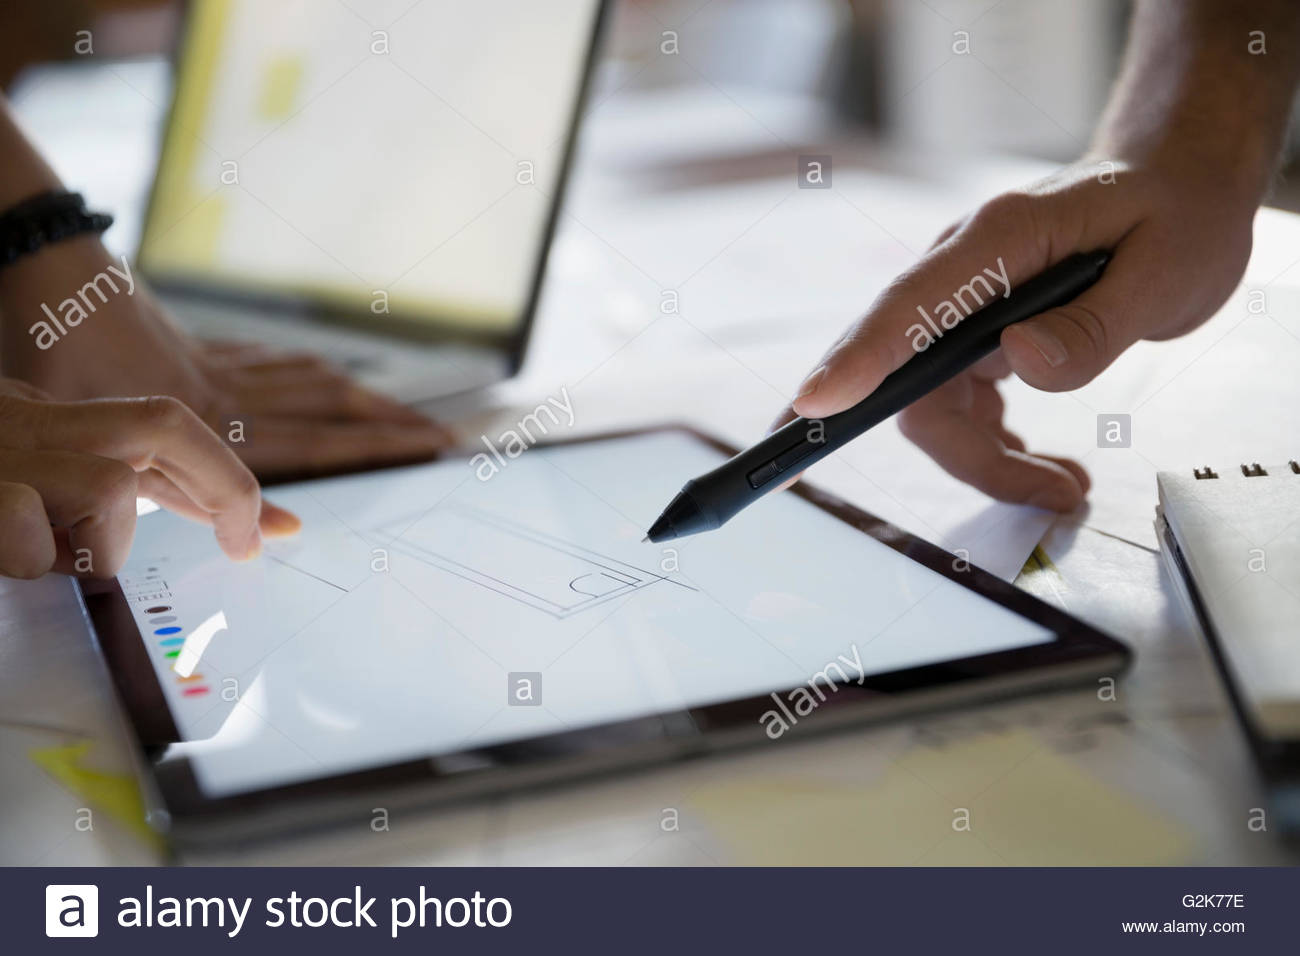 Close up designers drawing on digital tablet - Stock Image